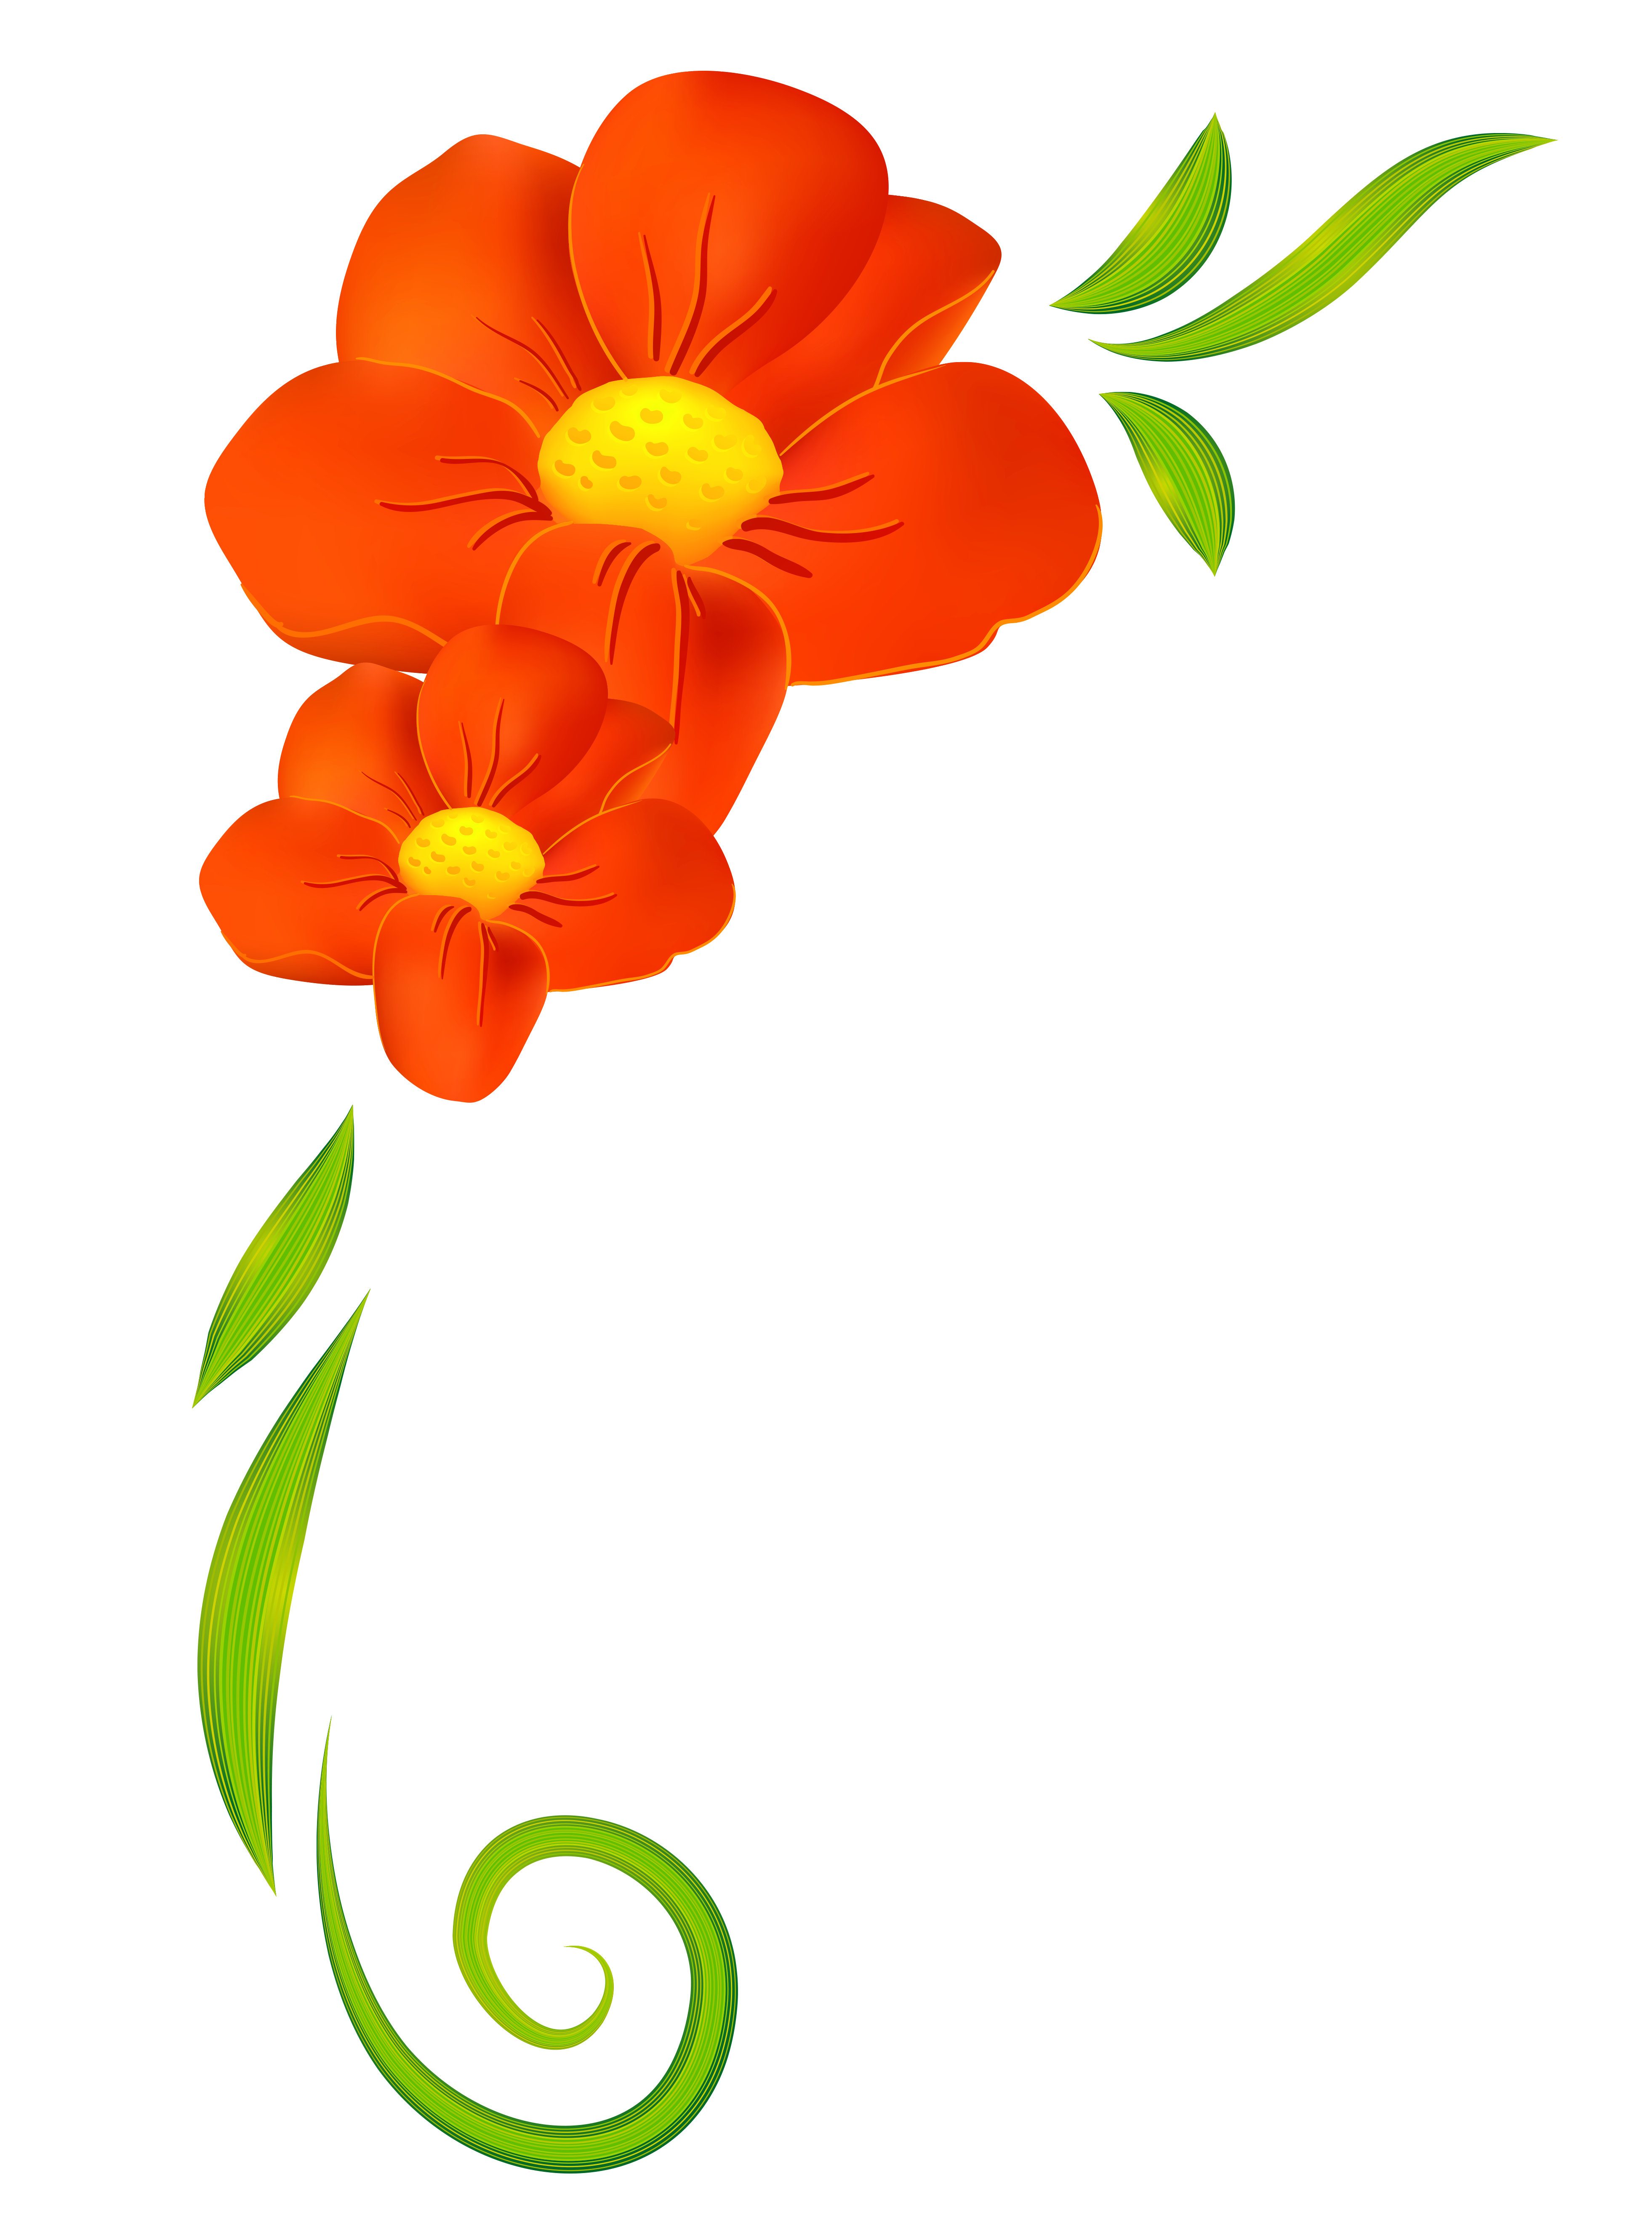 Poppy clipart one. Image result for spring